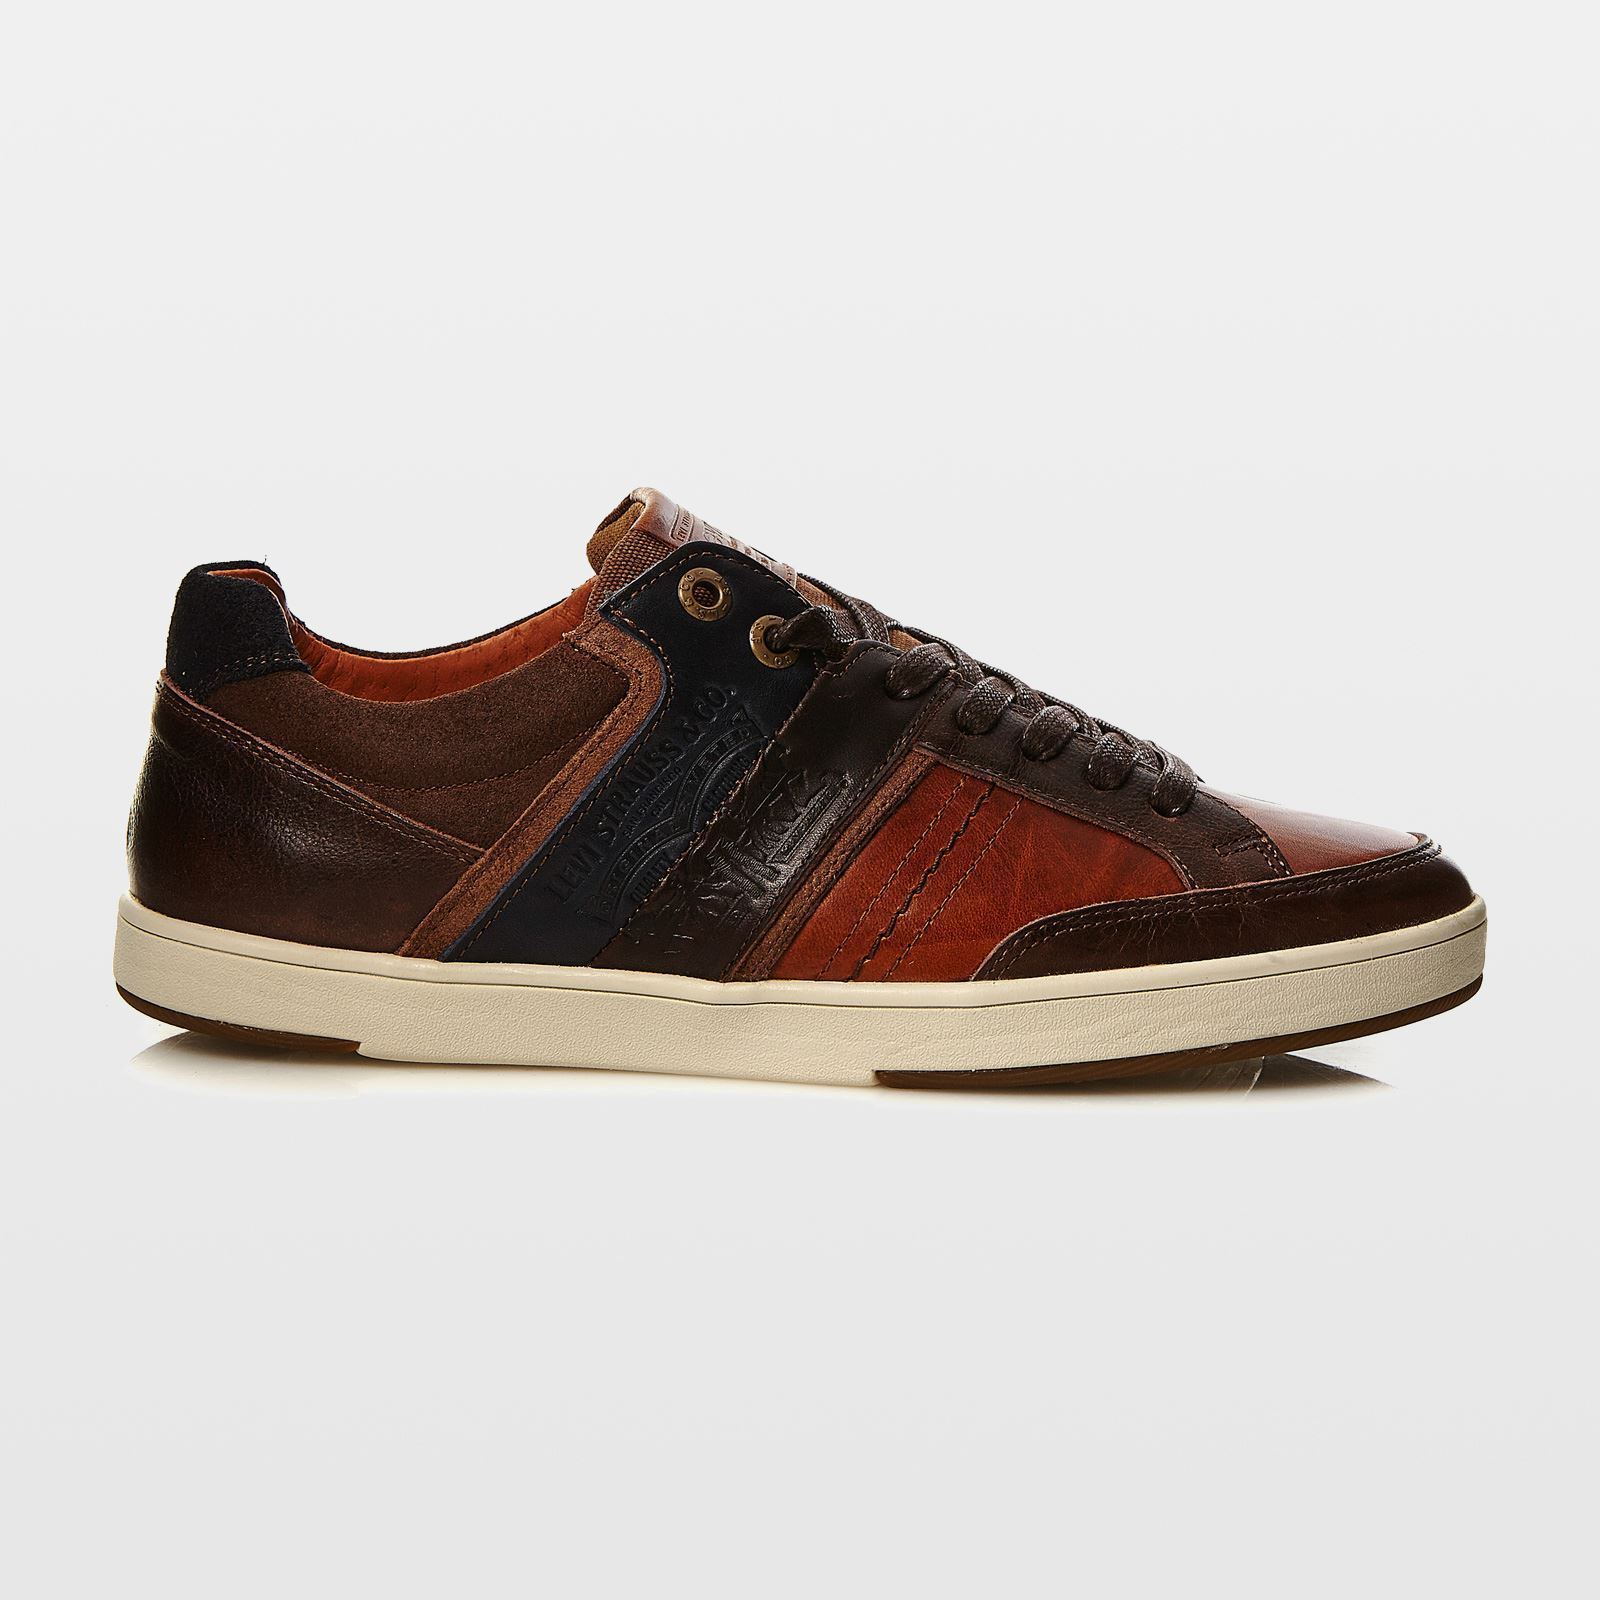 Levi's BEYERS Marron xw9fx